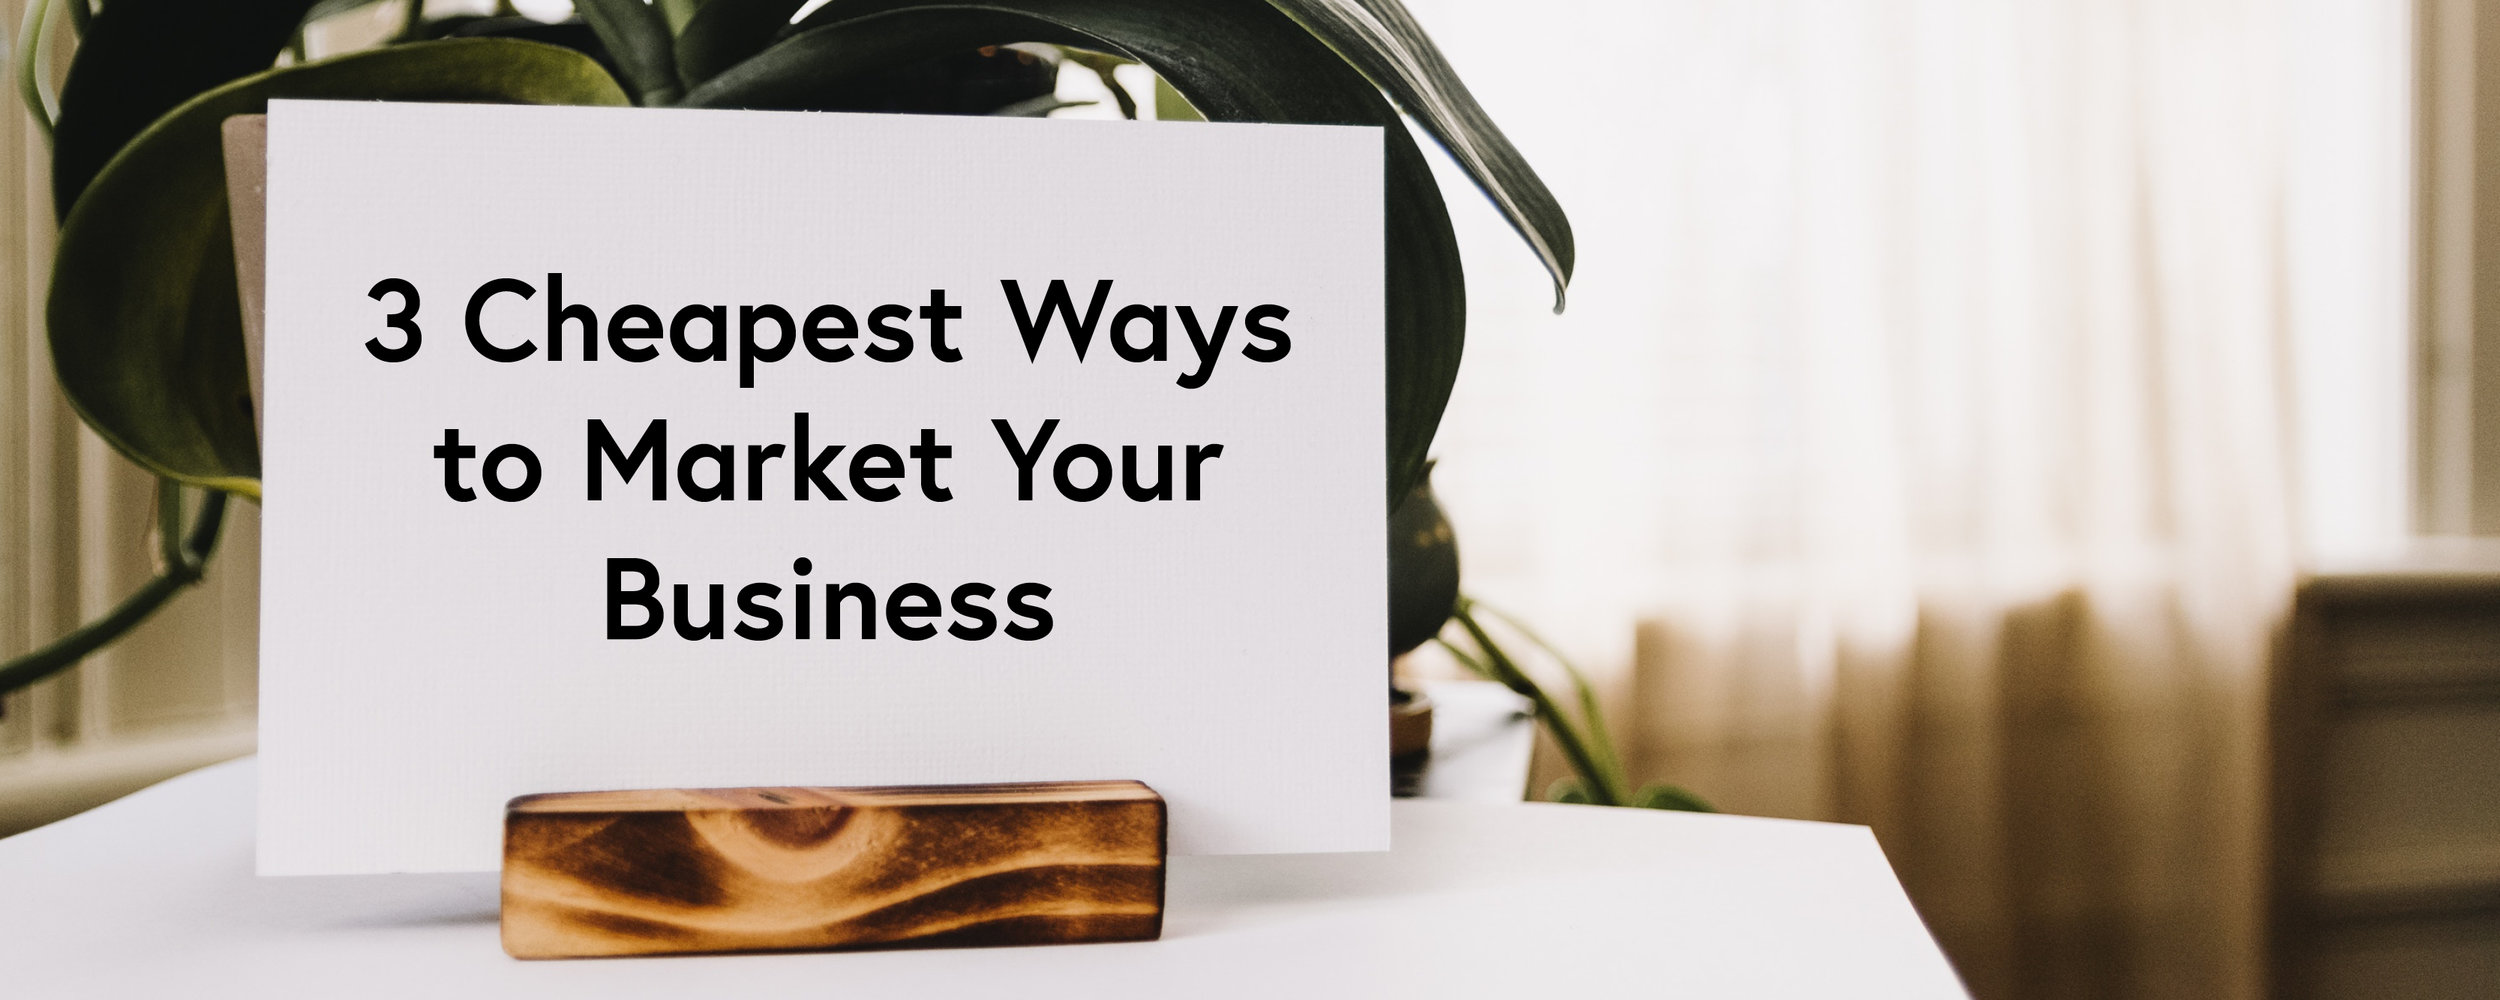 3 Cheapest Ways to Market Your Business.jpg